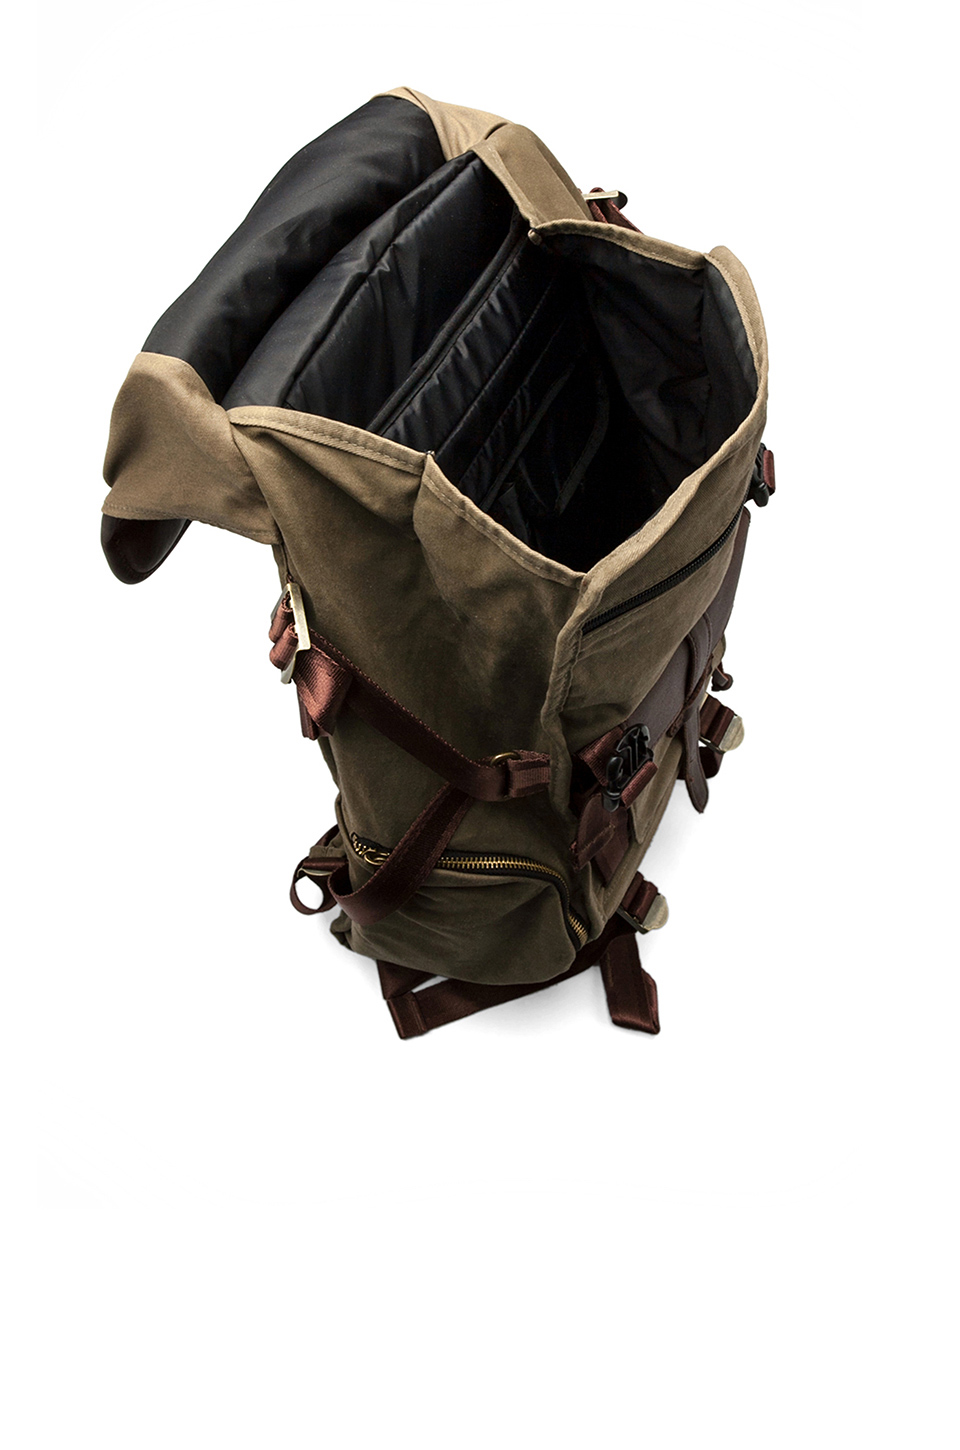 Jansport Skip Yowell Collection Pleasanton Backpack in Army Green